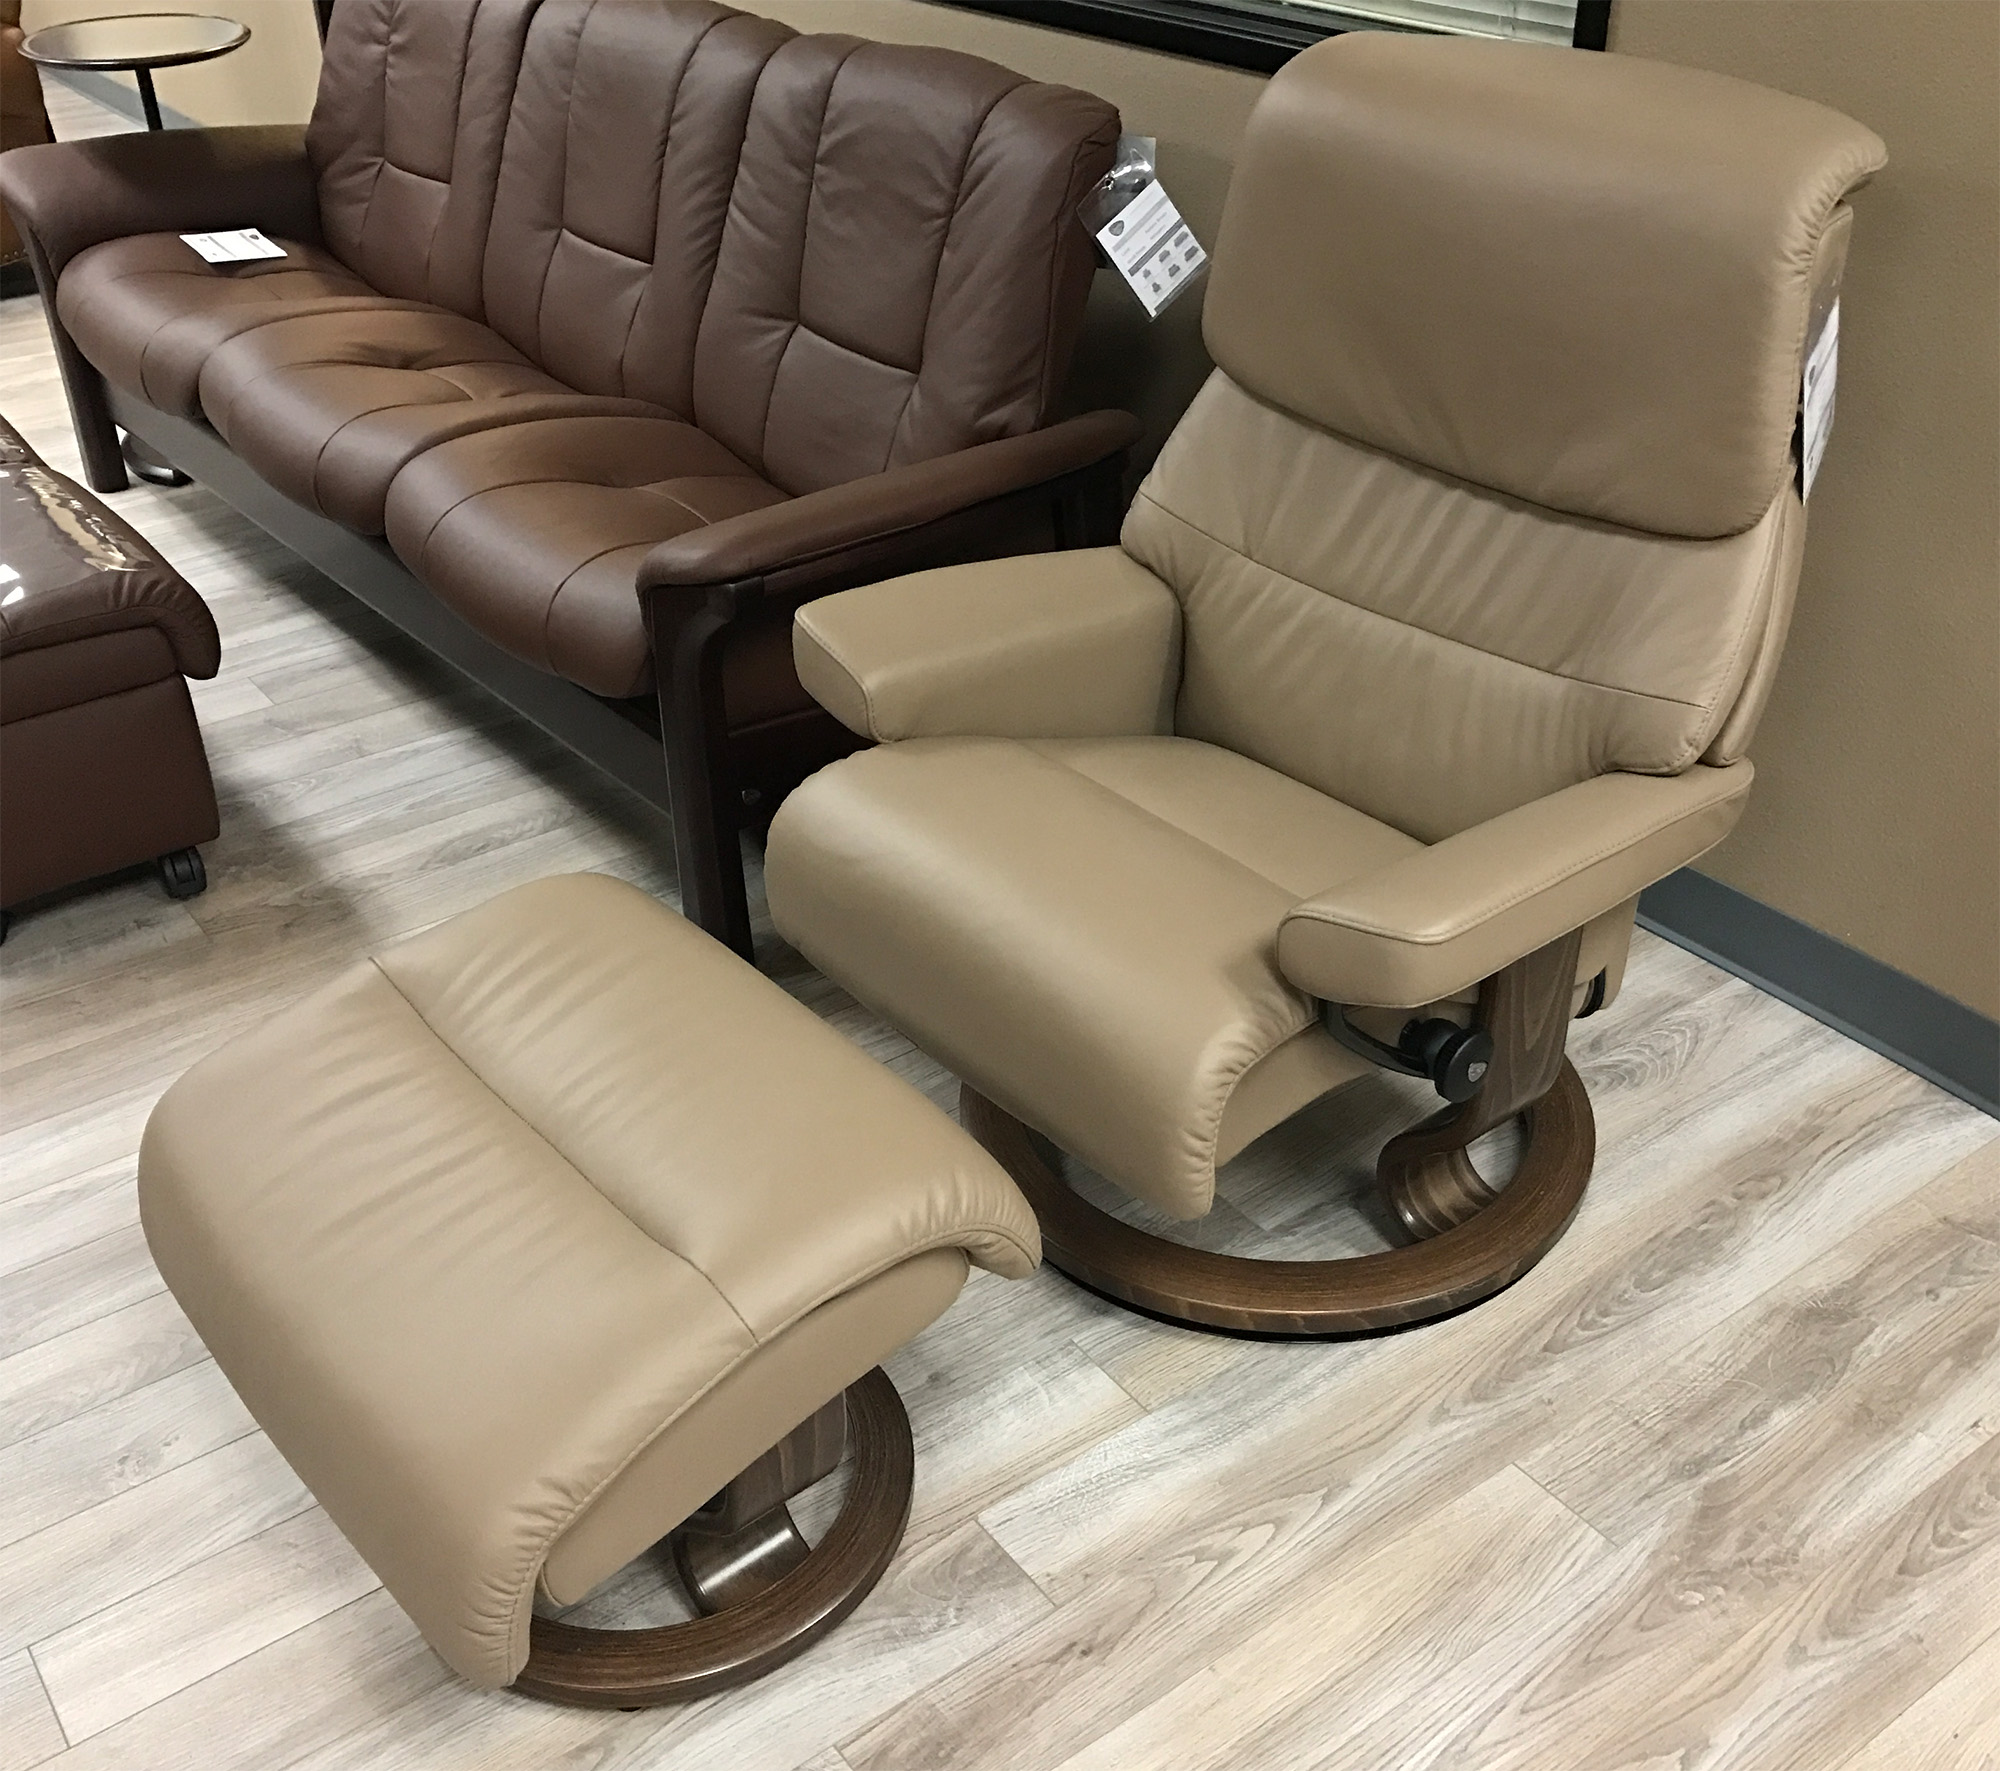 Stresless Stressless Capri Paloma Funghi Leather Recliner Chair And Ottoman By Ekornes